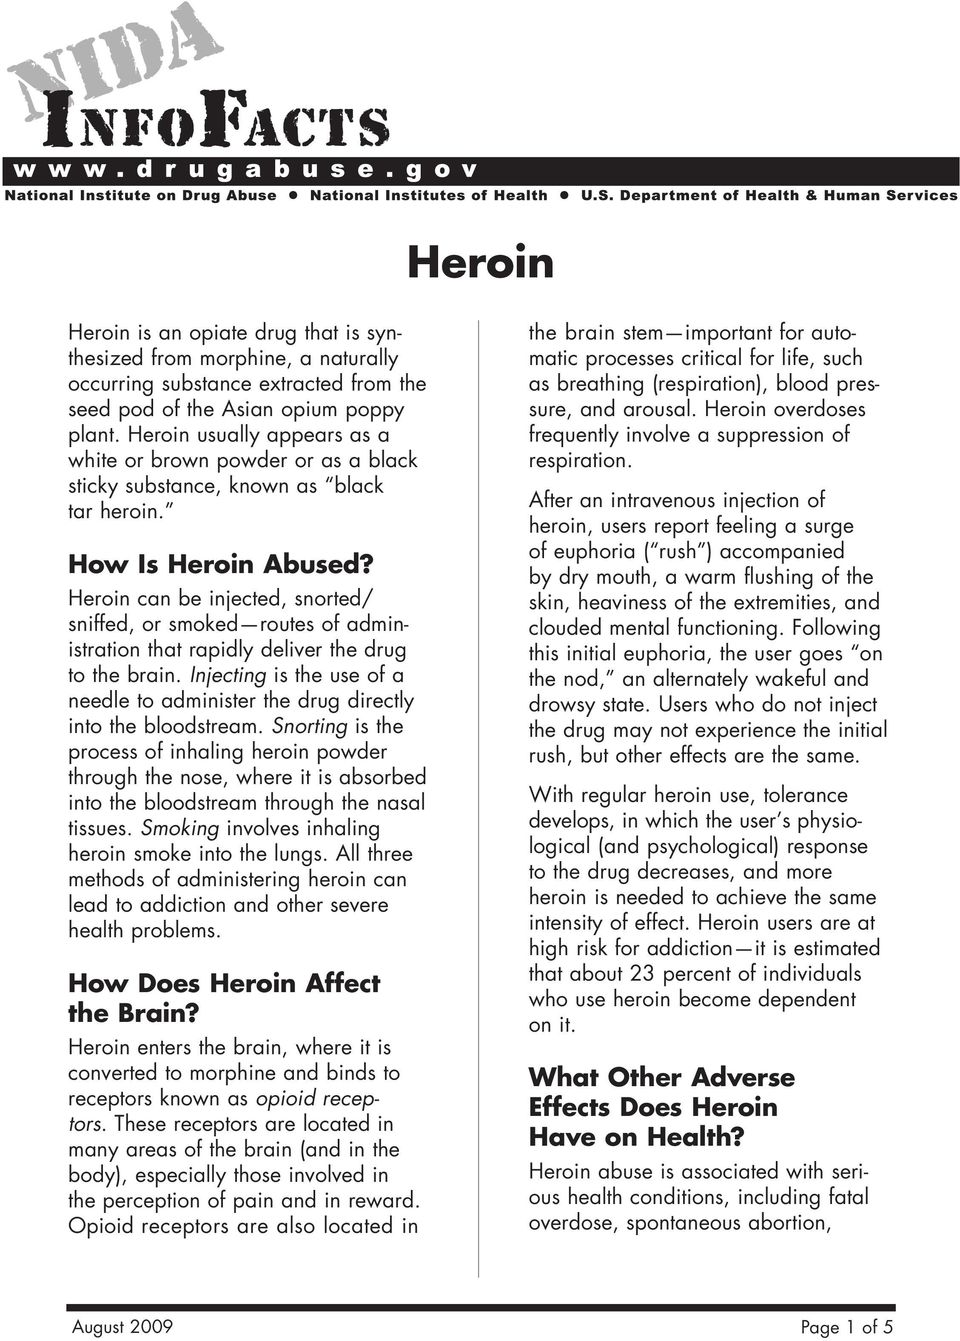 Heroin can be injected, snorted/ sniffed, or smoked routes of administration that rapidly deliver the drug to the brain.